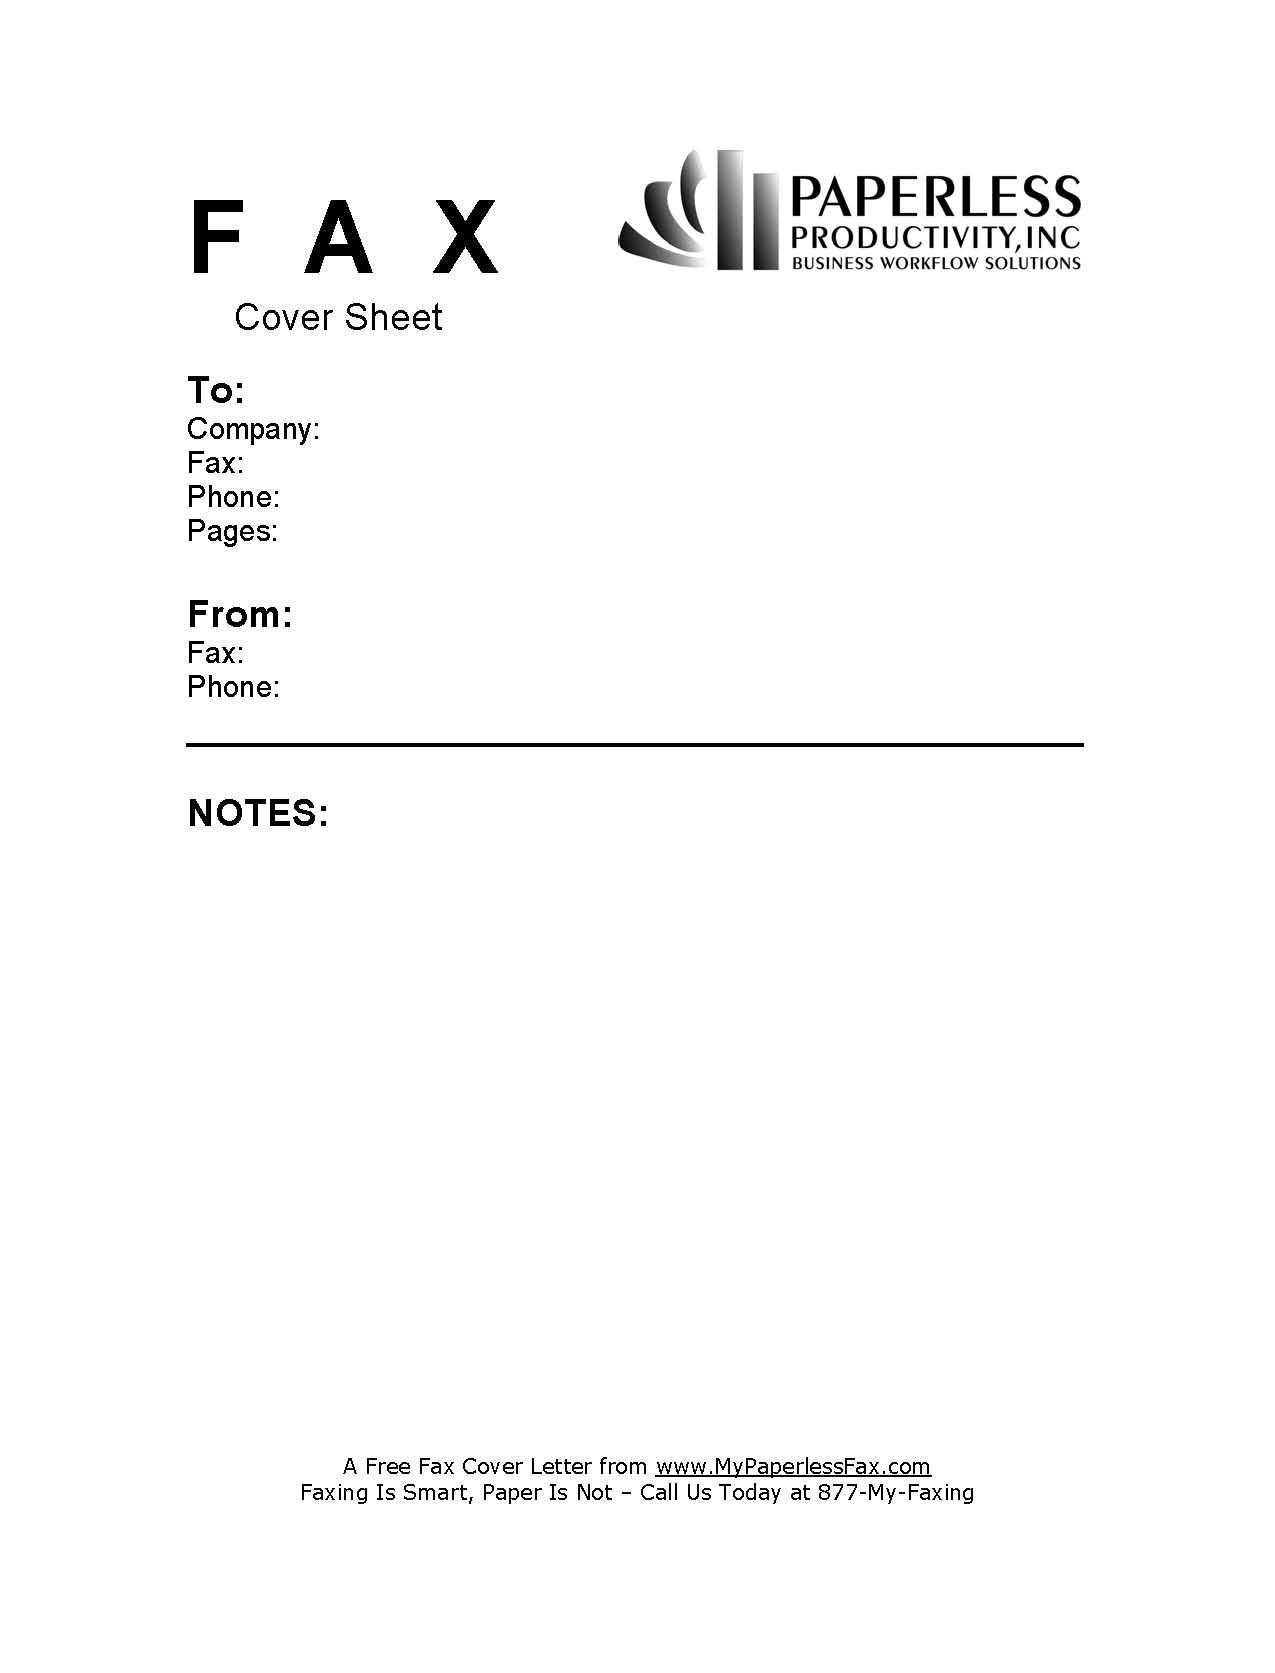 staples fax cover sheet